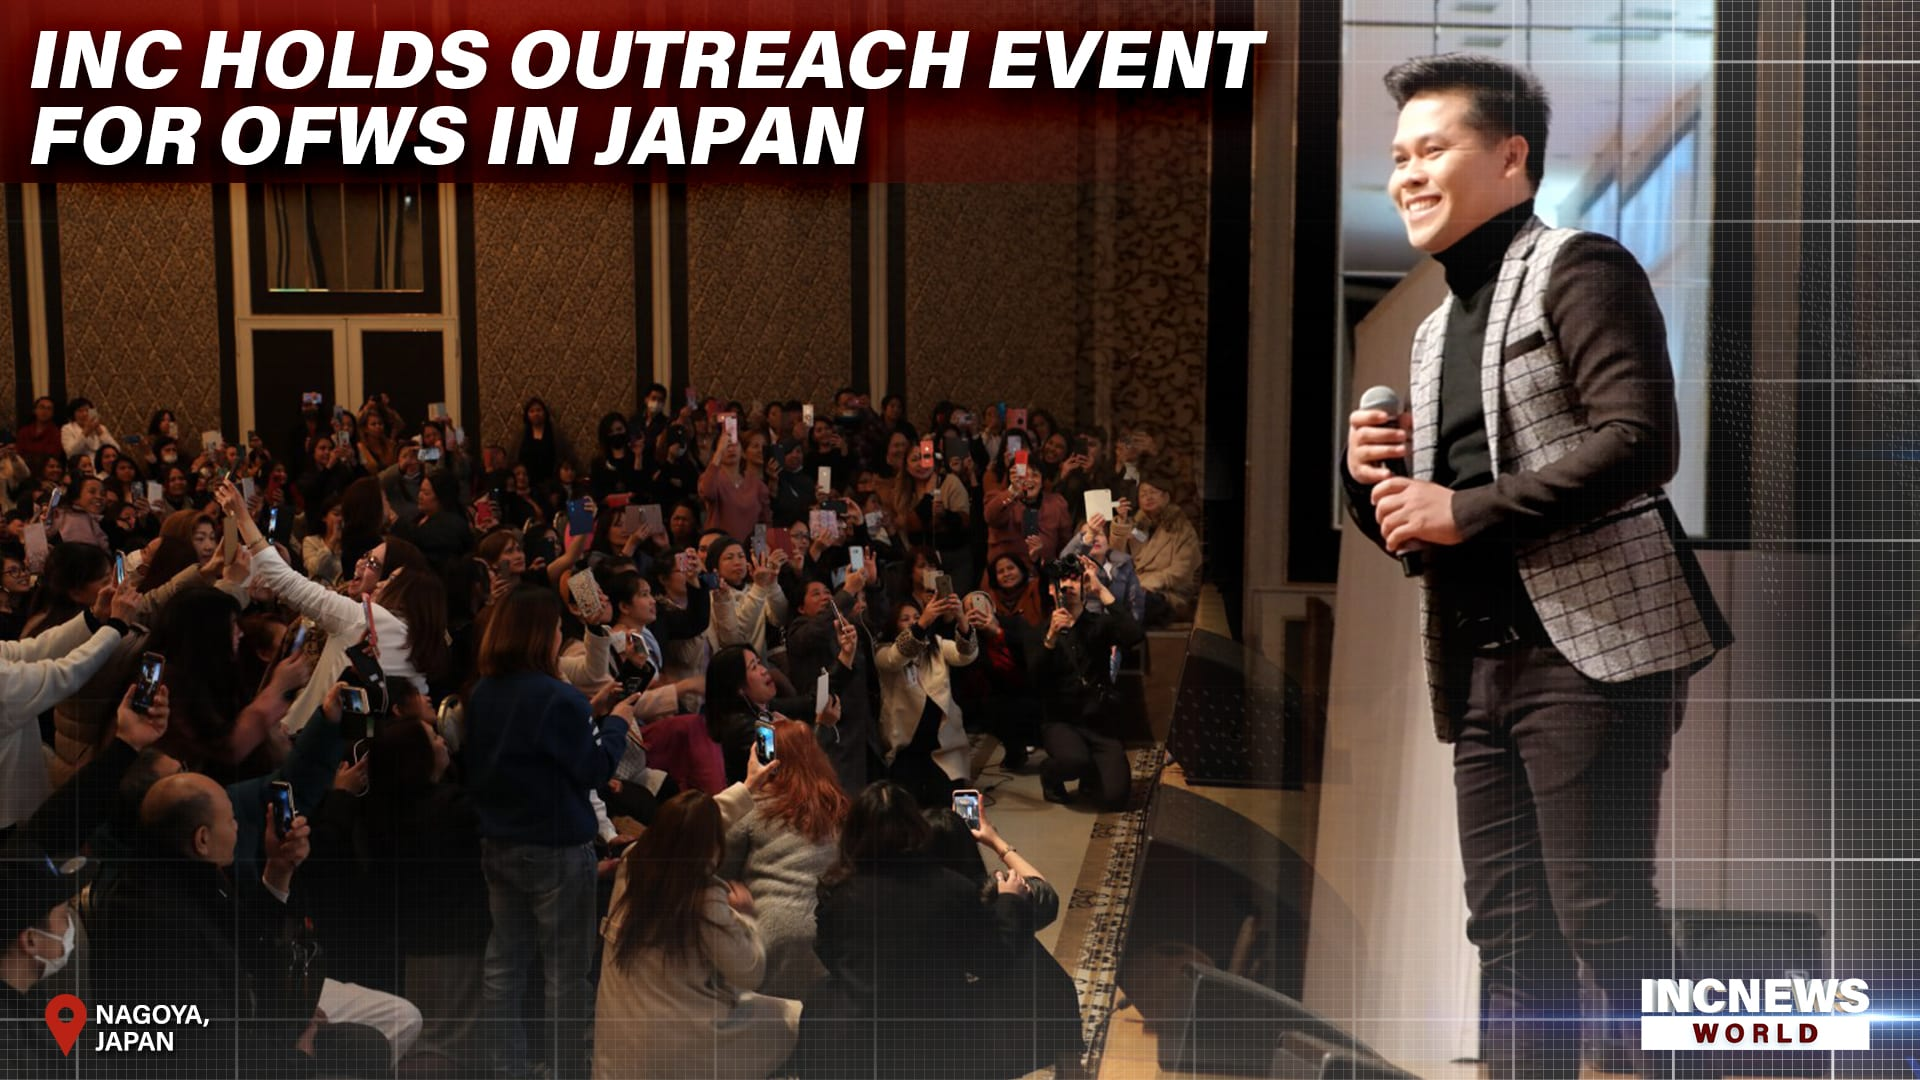 INC Holds Outreach Event for OFWs in Japan